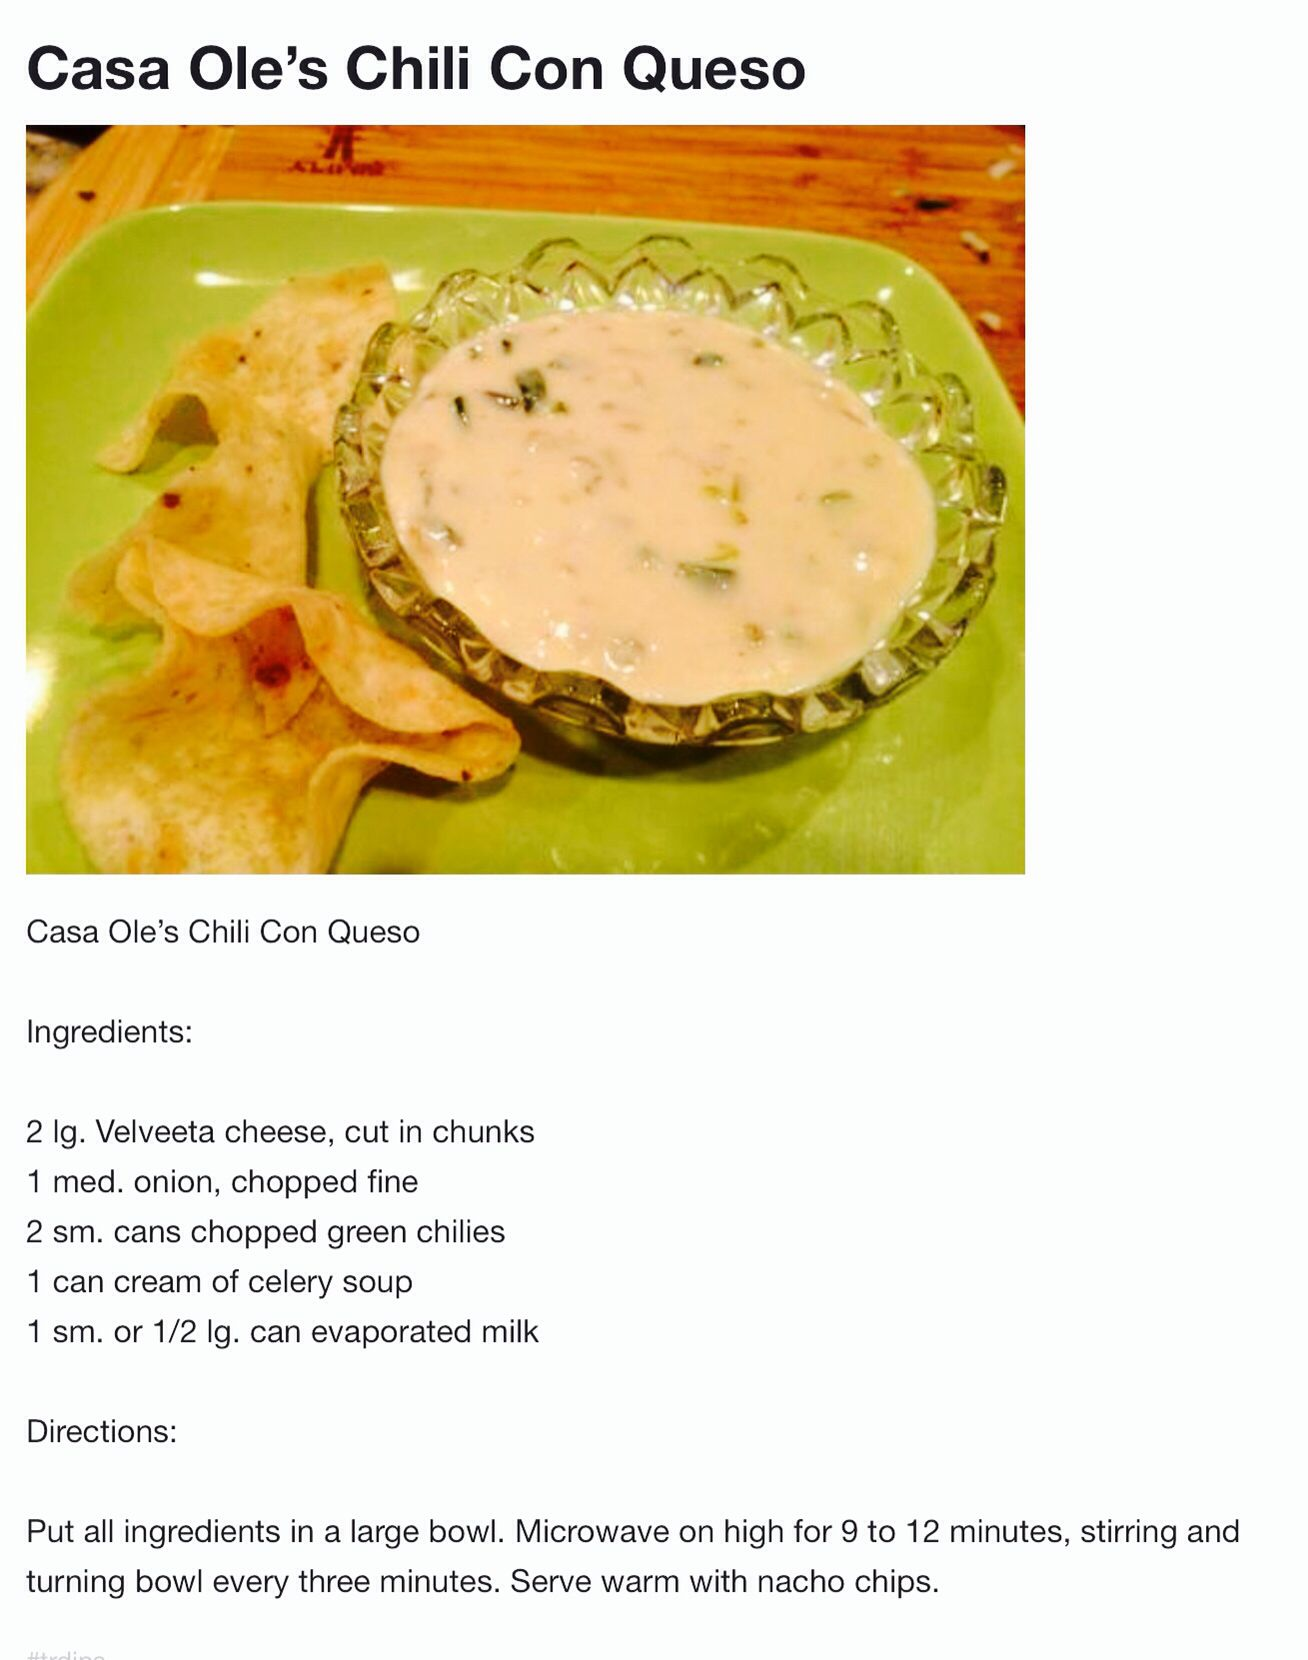 Tested And Approved Easiest Way To Make Creamy Queso Love It Never Thought About Adding Cream Of C Appetizer Recipes Mexican Food Recipes Restaurant Recipes